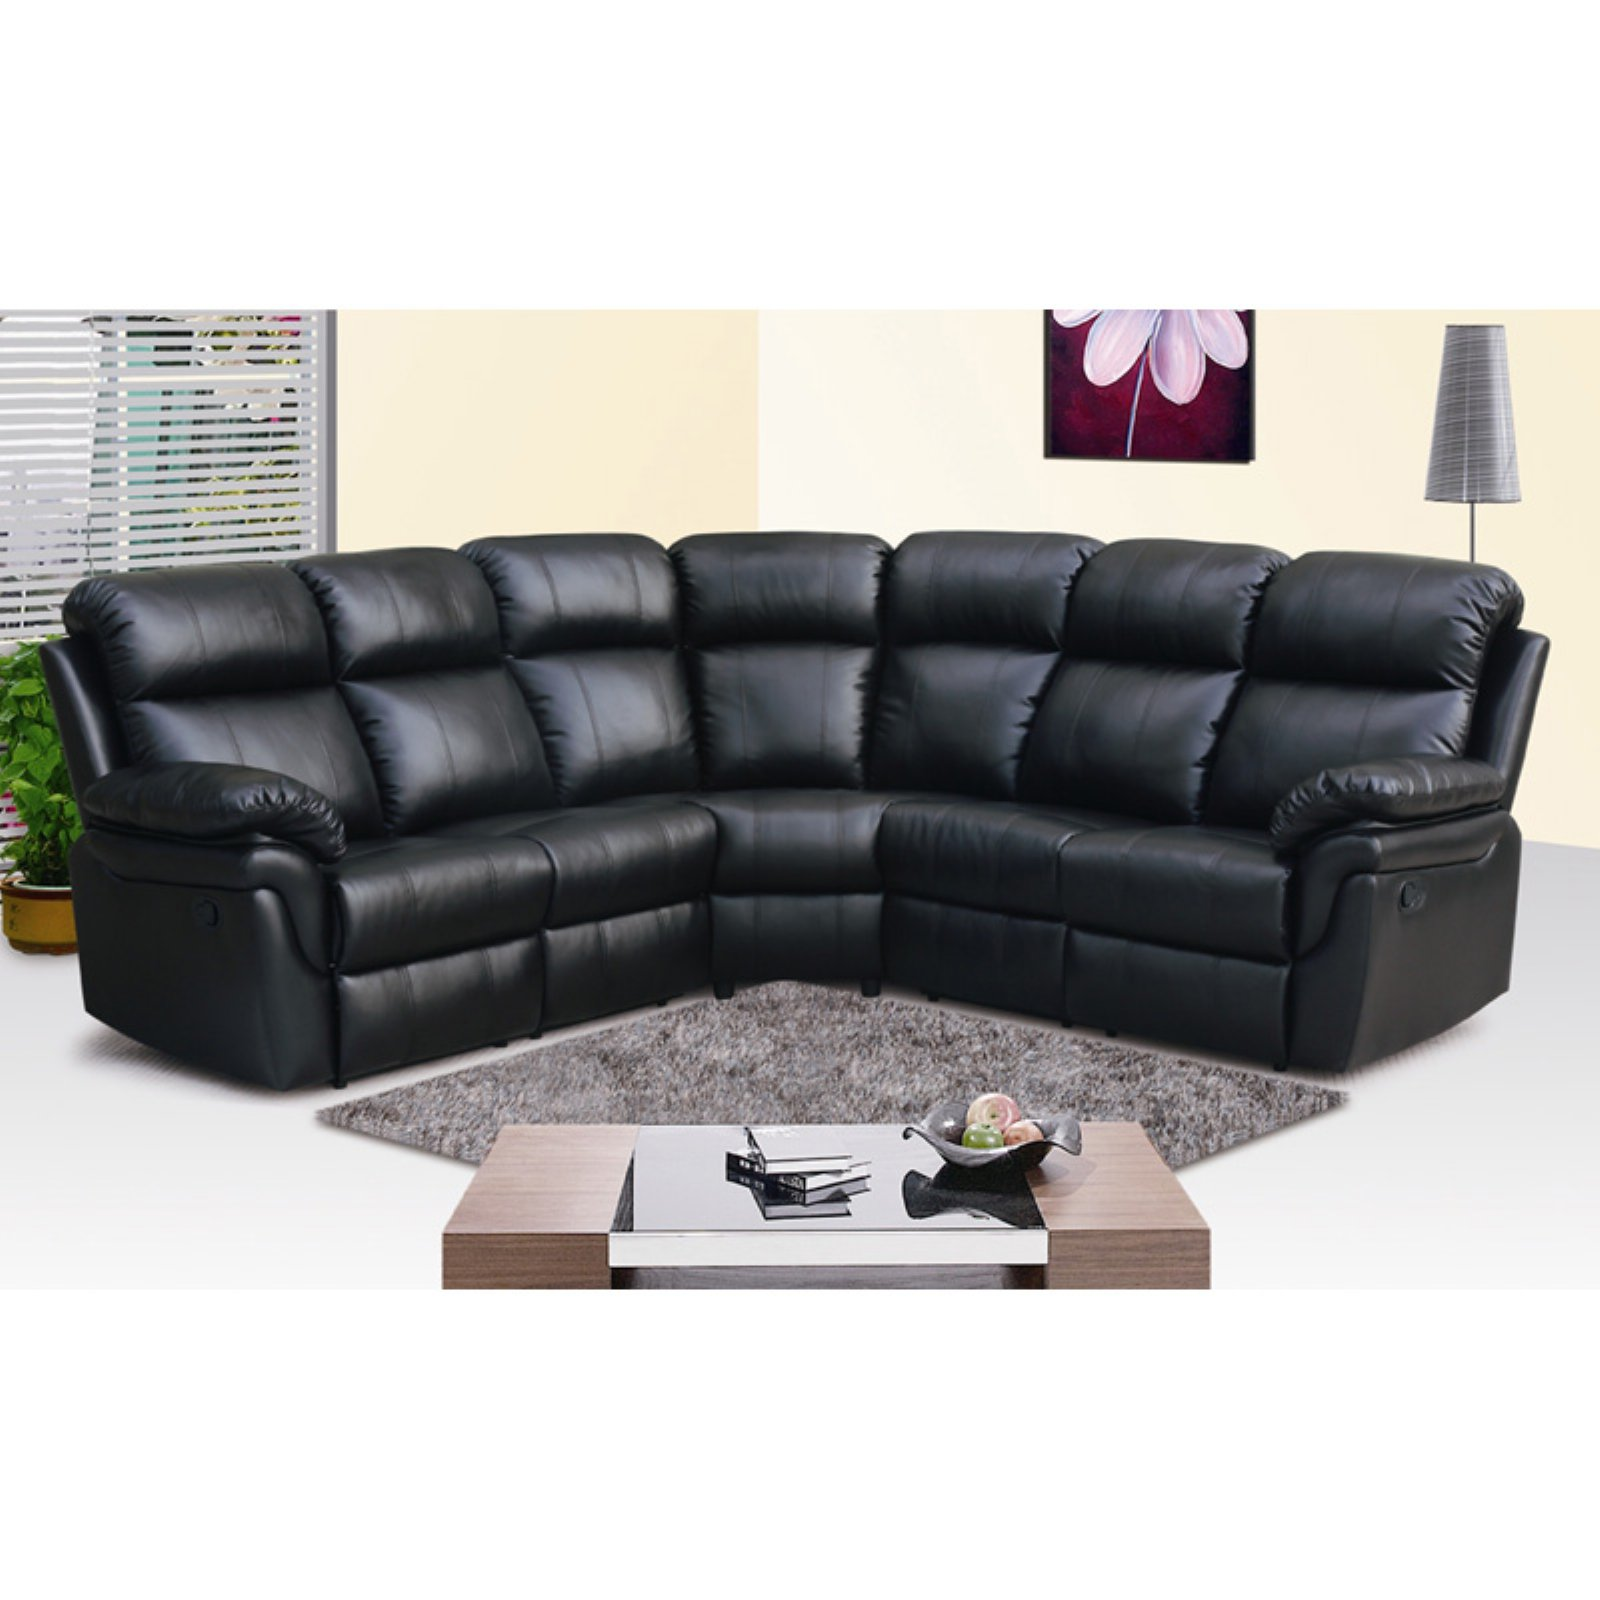 Frankfurt Sectional Sofa with Two Recliners Walmart